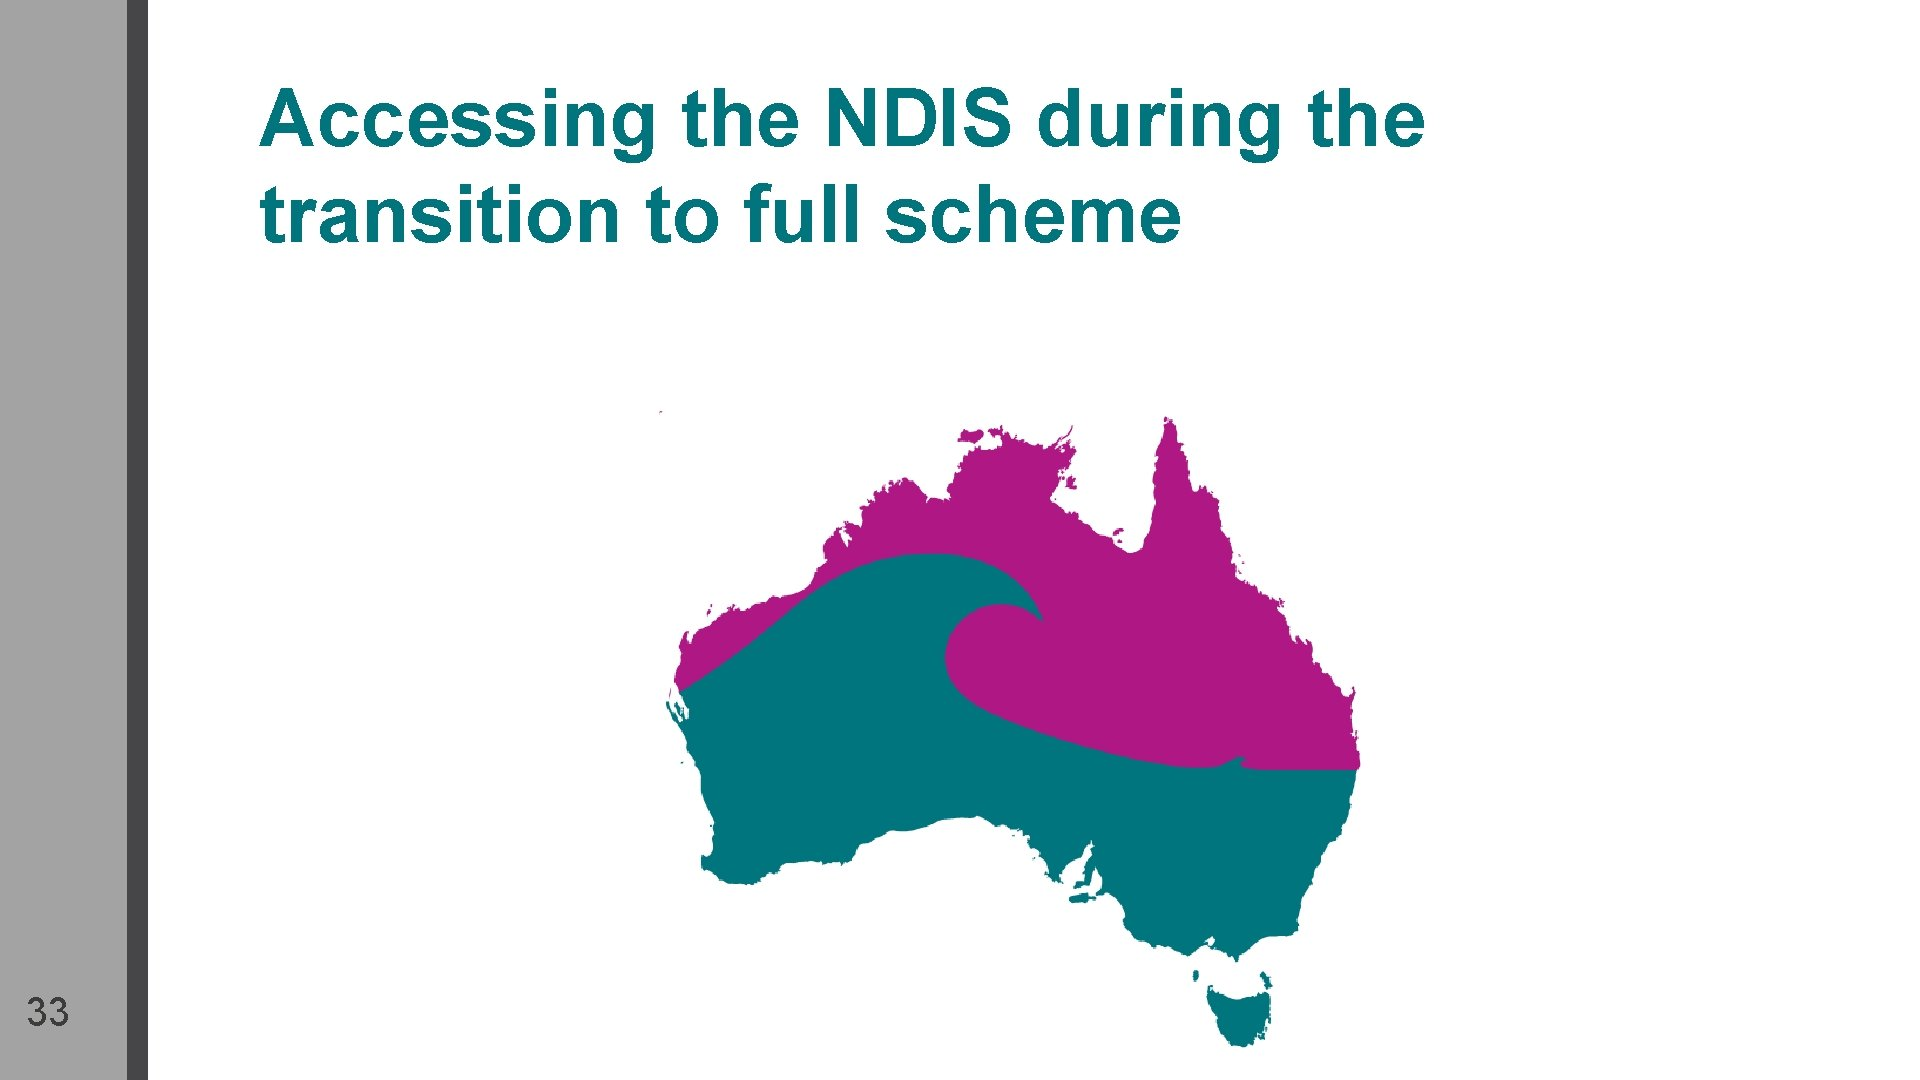 Accessing the NDIS during the transition to full scheme 33